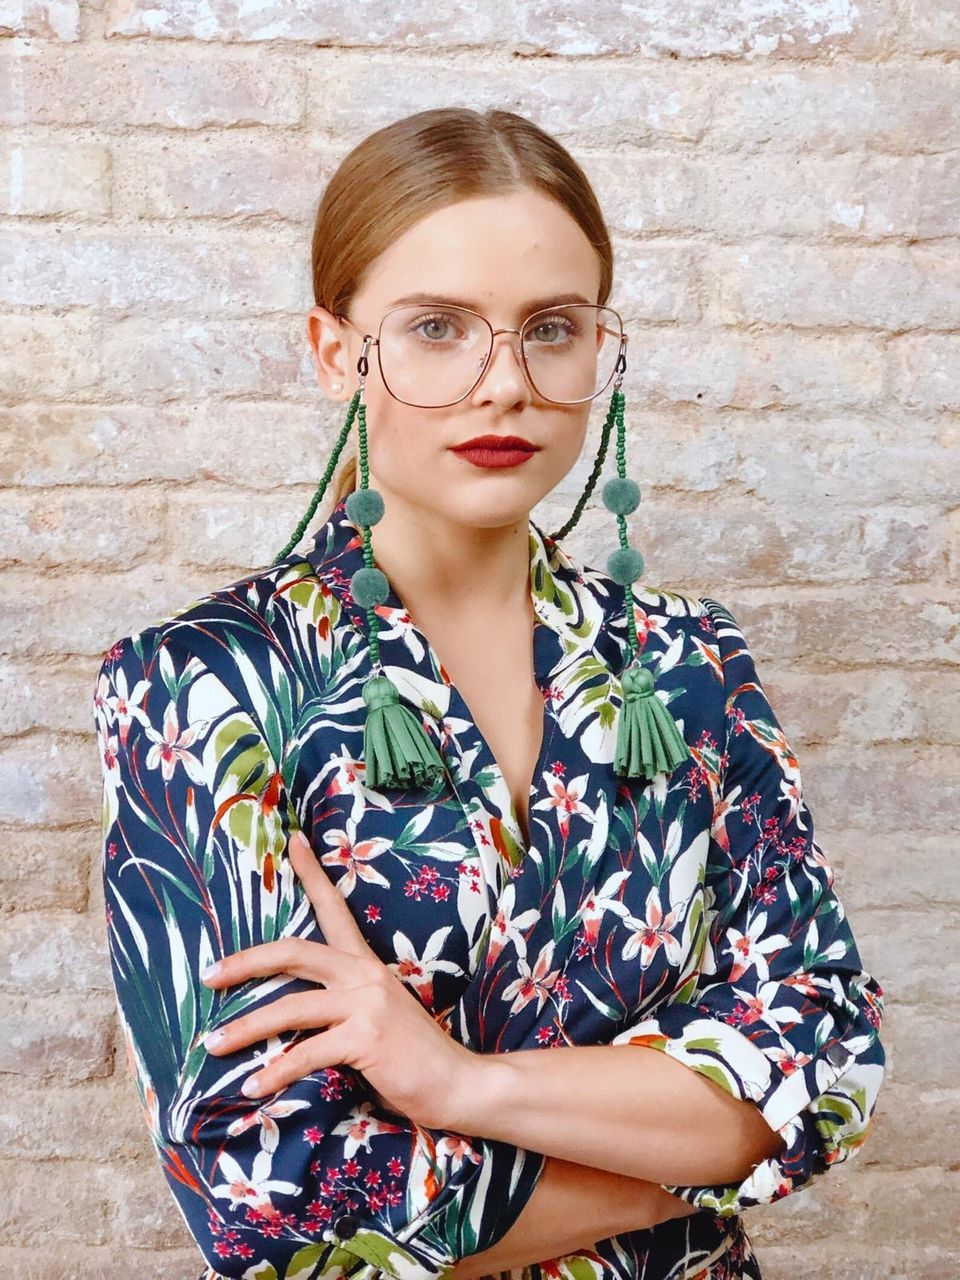 Spring And Summer 2020 Fashion Trends To Watch, According To Style Experts 7